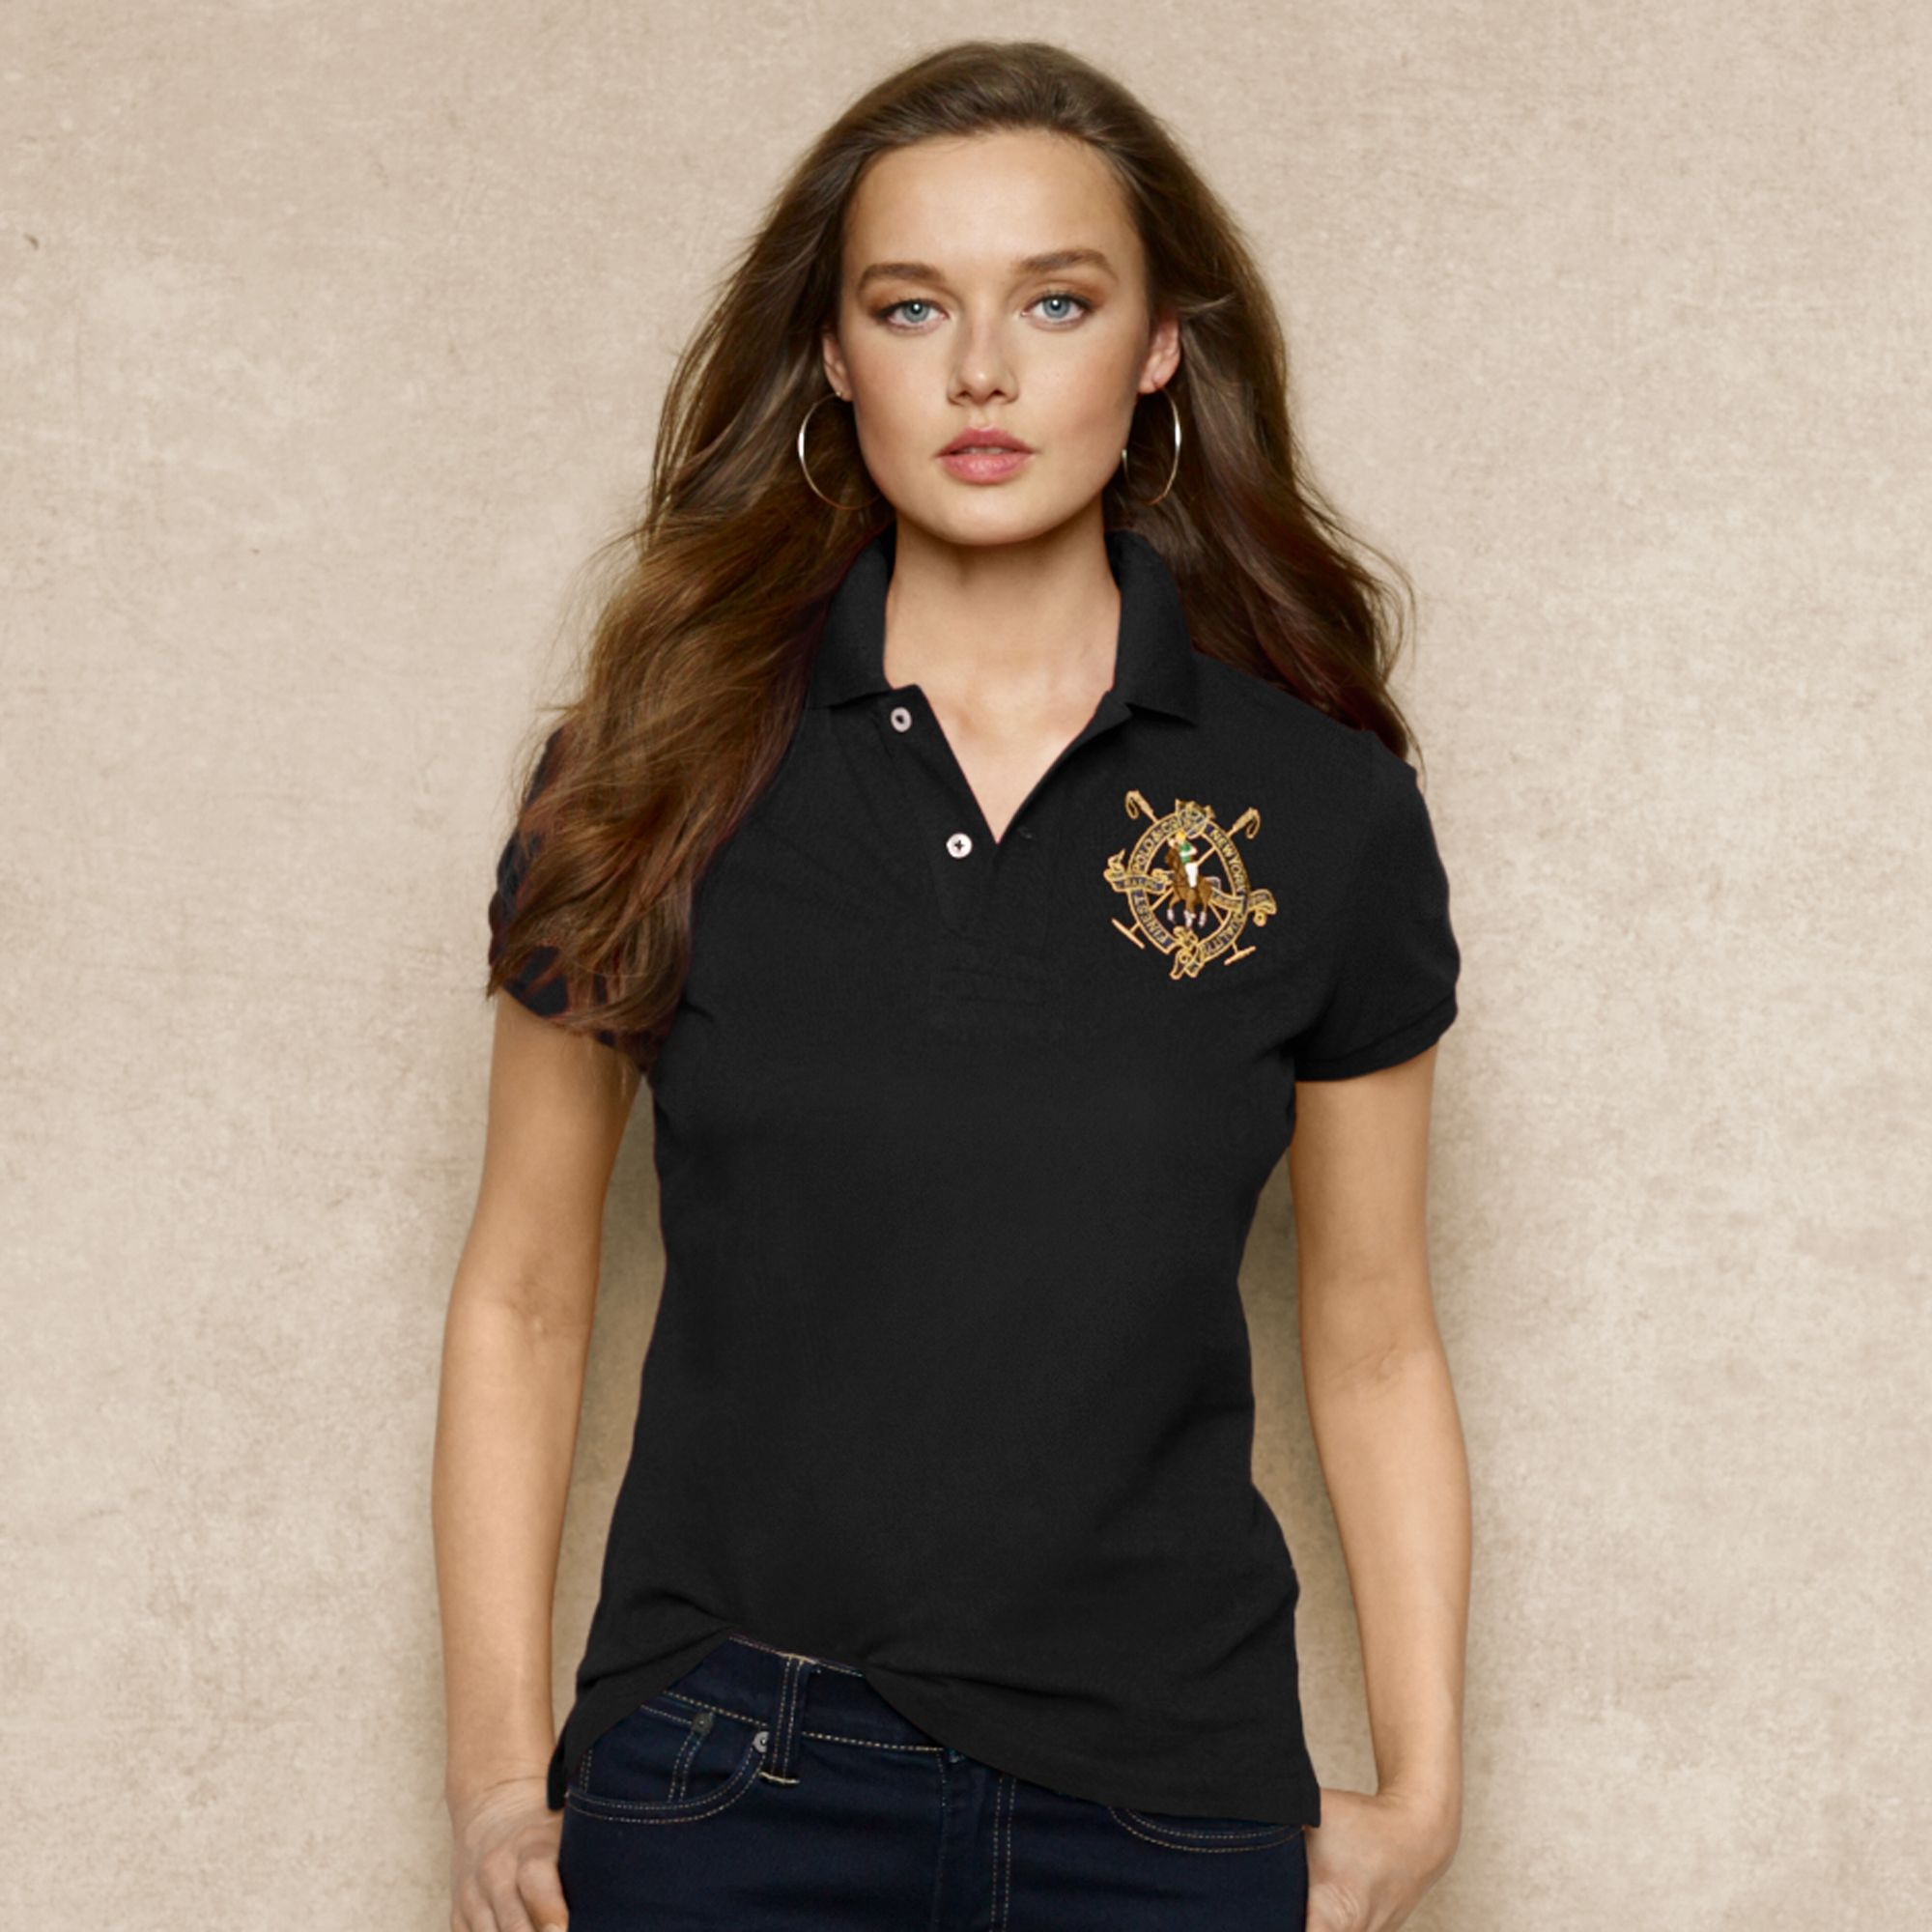 2019 Famous Brand Women Cotton Golf Polo Shirts Turn-down Collar Golf Wear Short Sleeves Jersey Breathable Golf Shirt Clothing